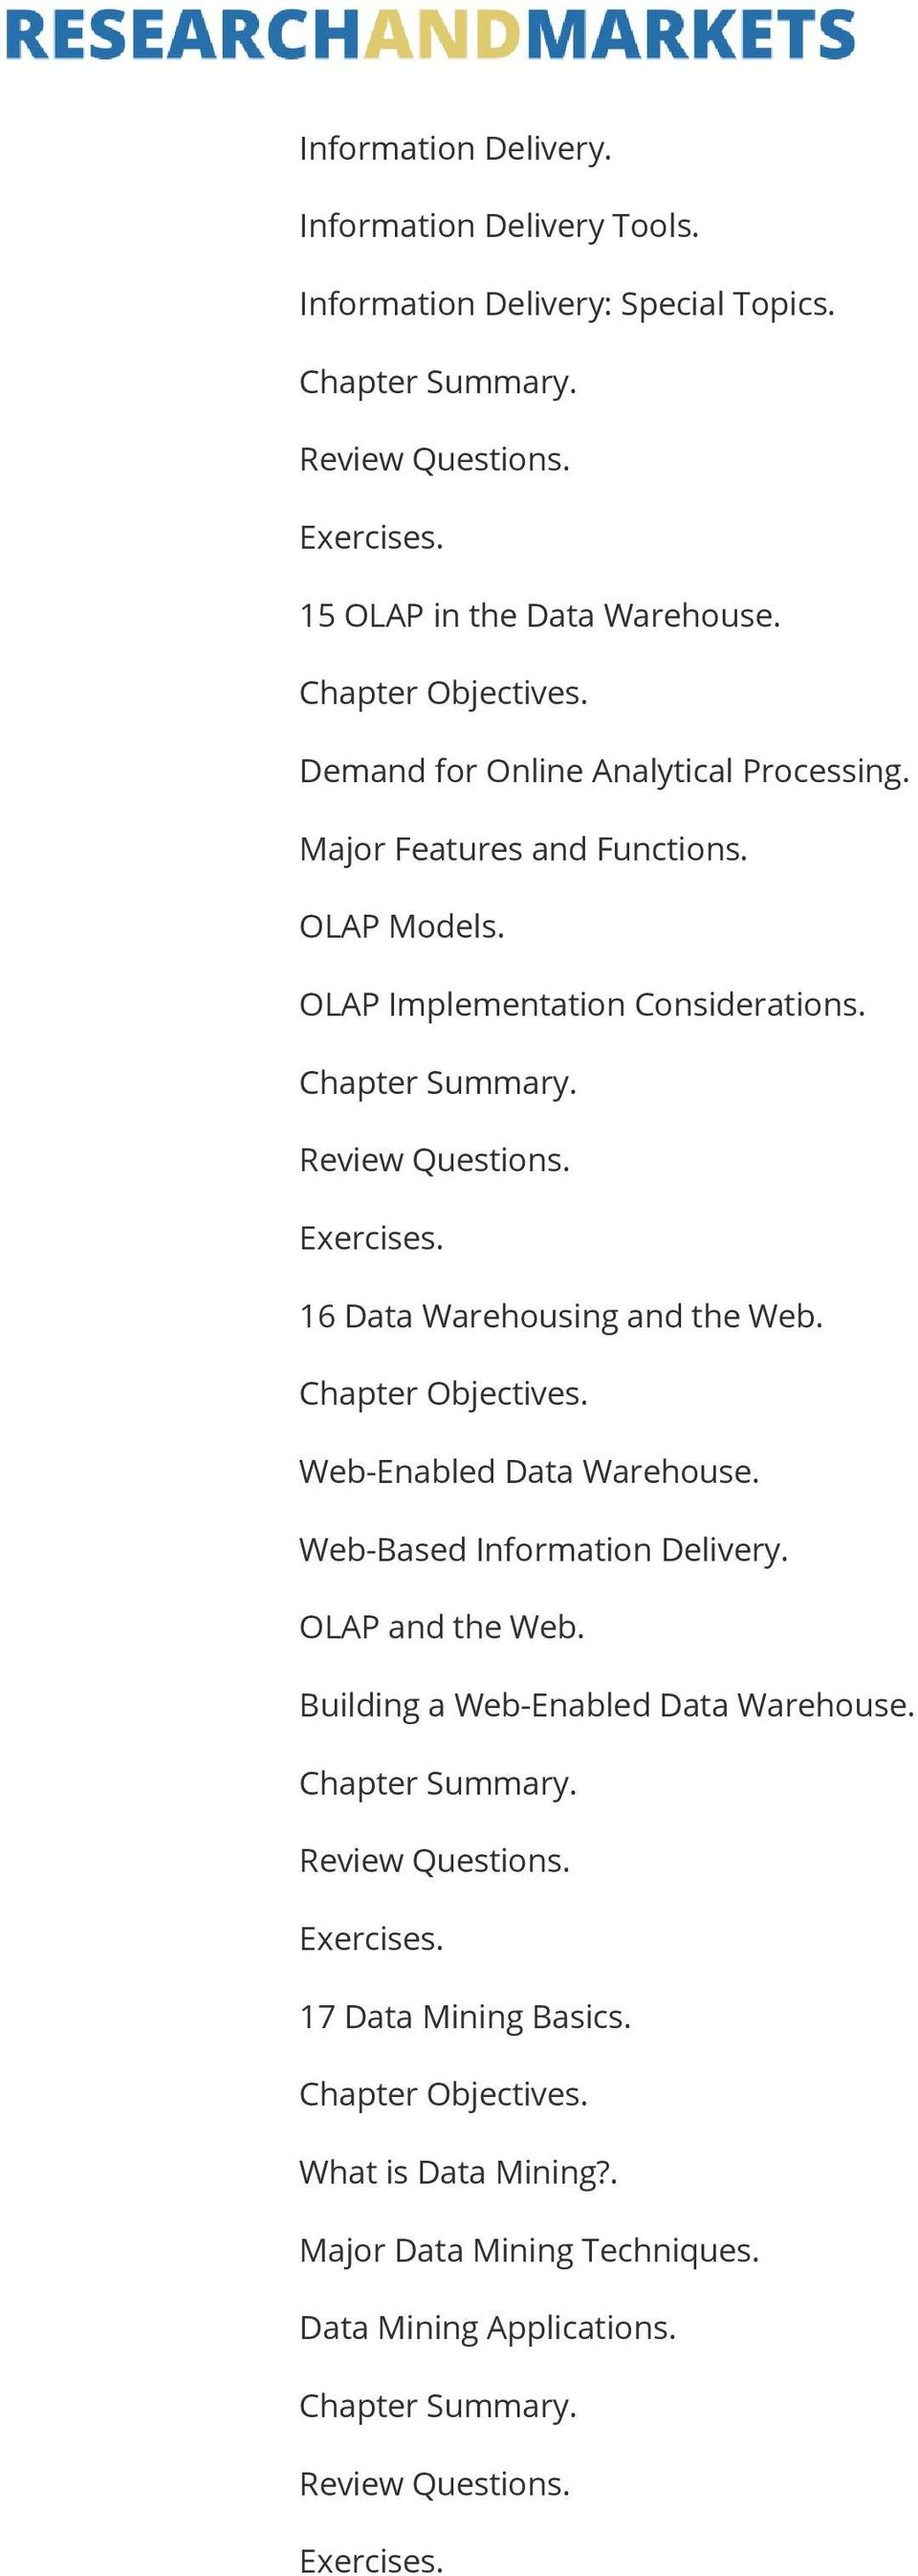 16 Data Warehousing and the Web. Web-Enabled Data Warehouse. Web-Based Information Delivery. OLAP and the Web.